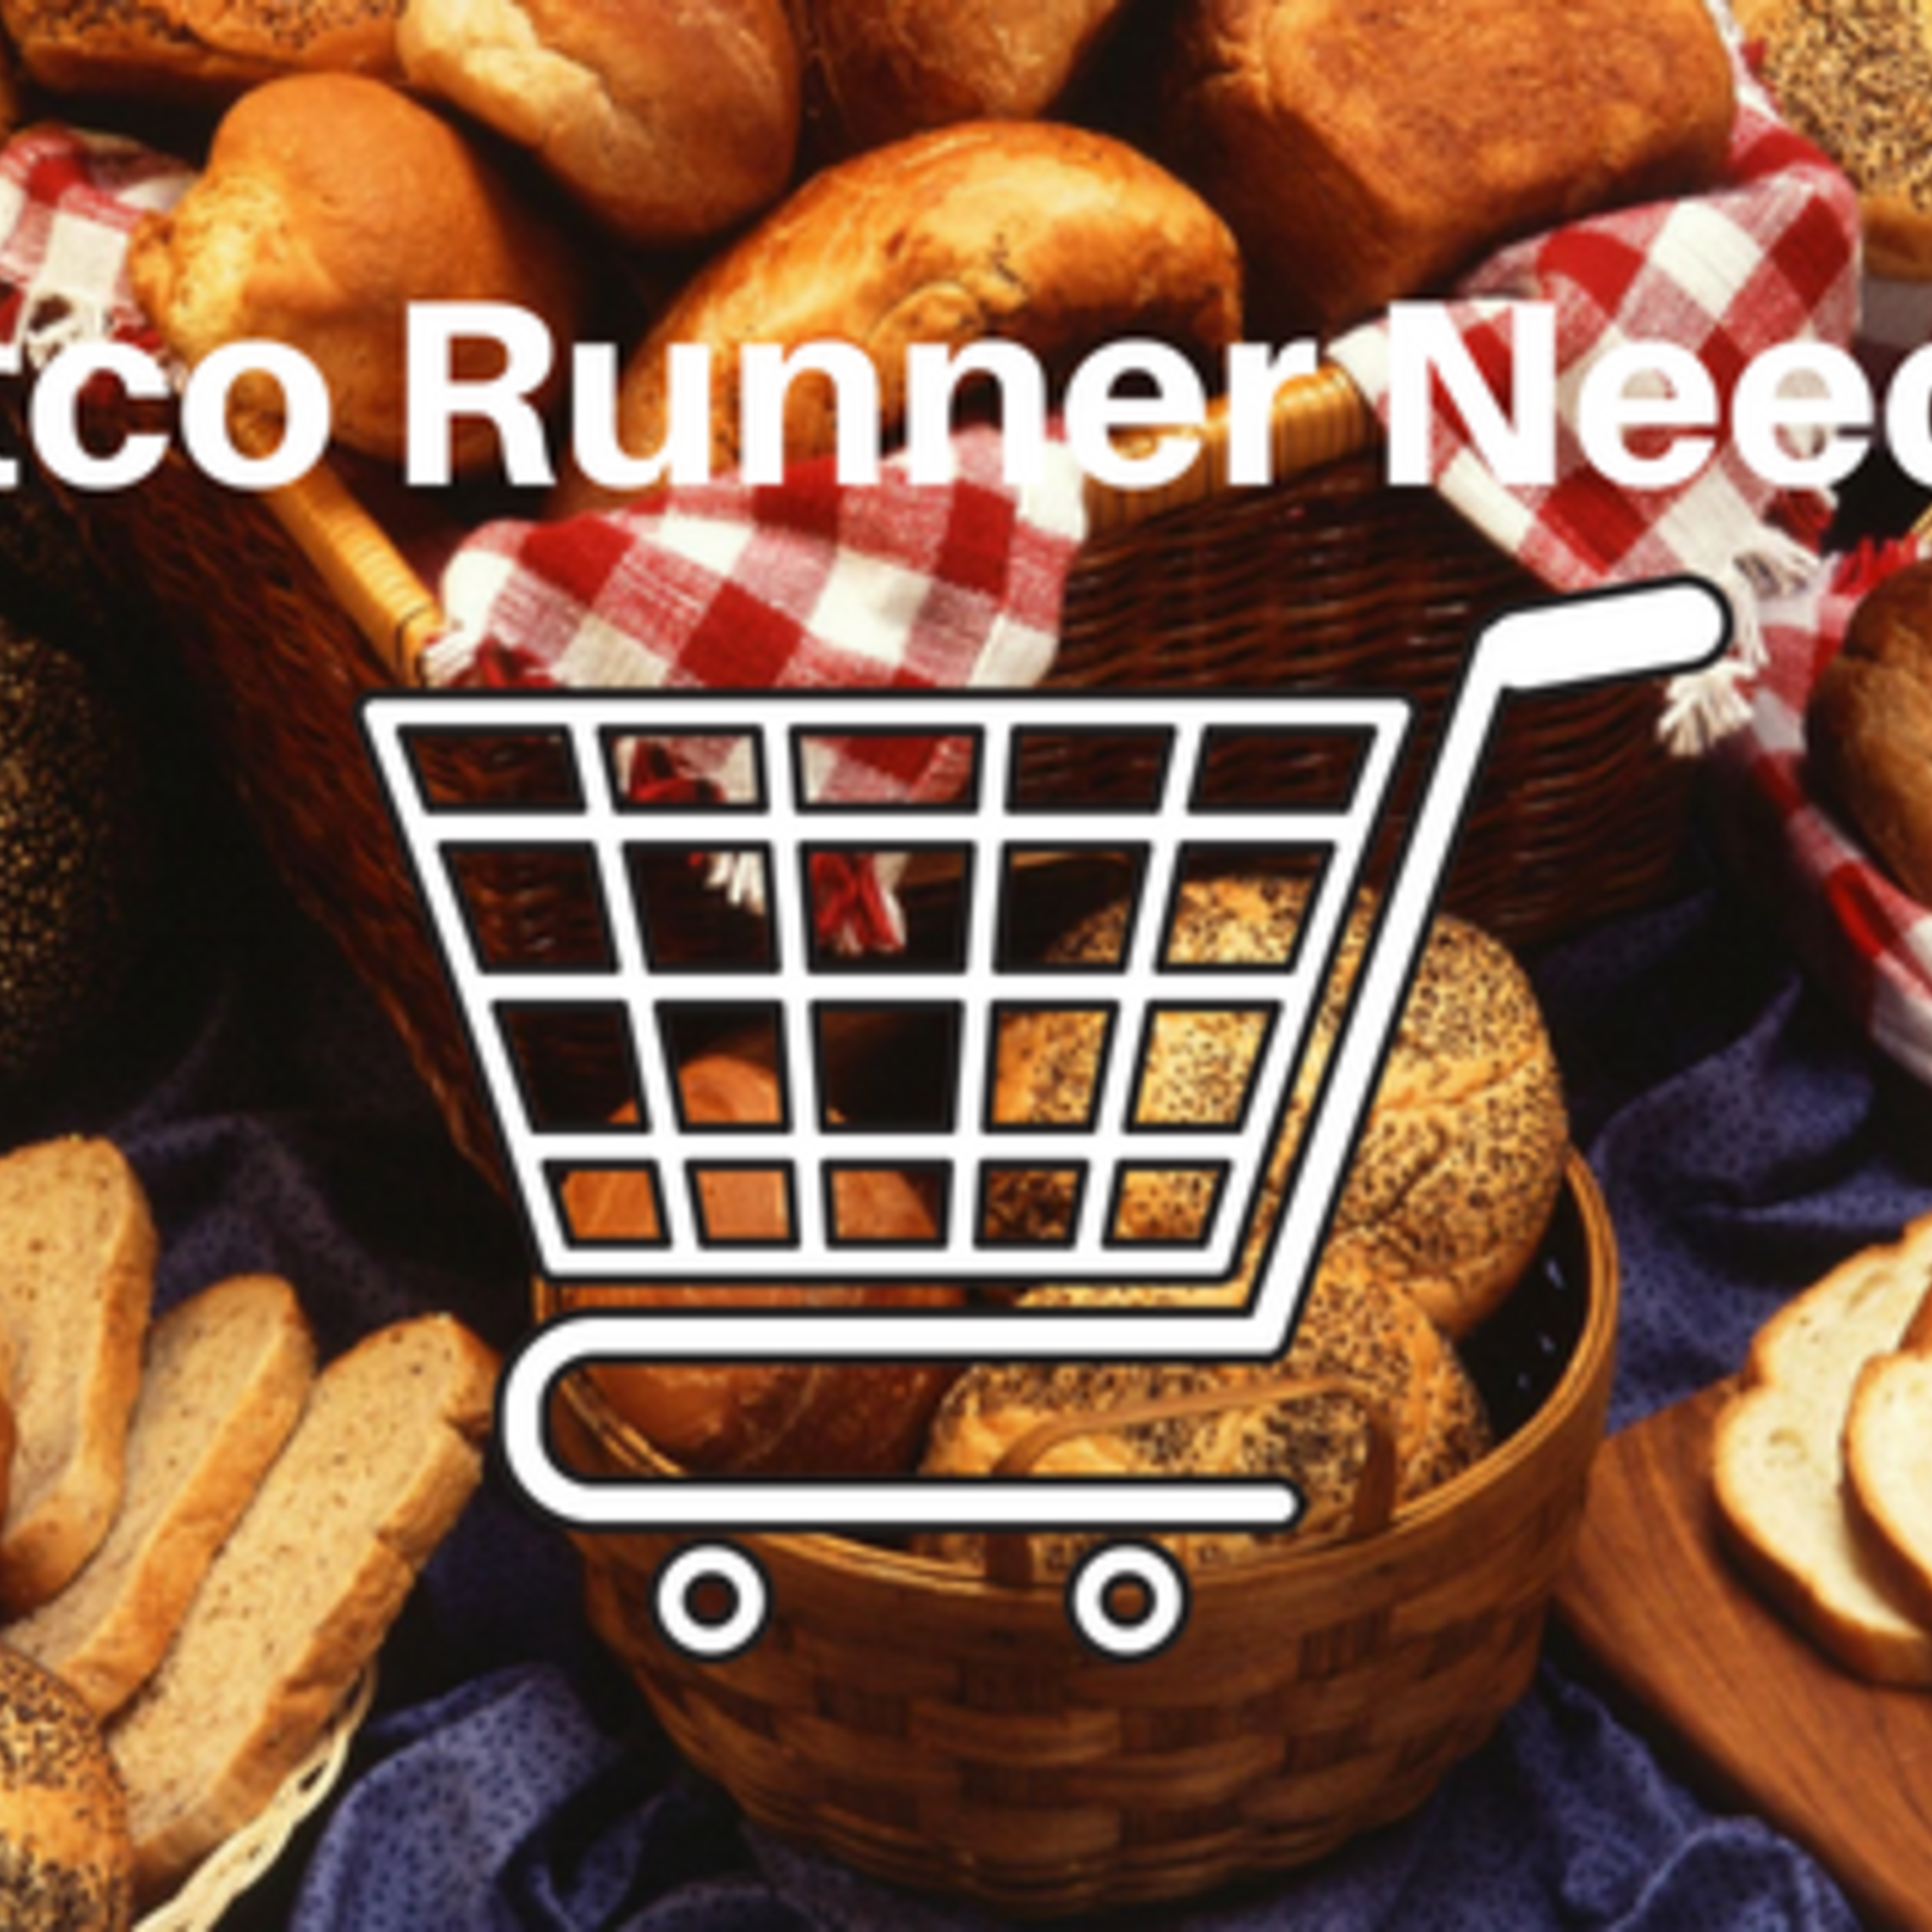 Costco Runner Needed